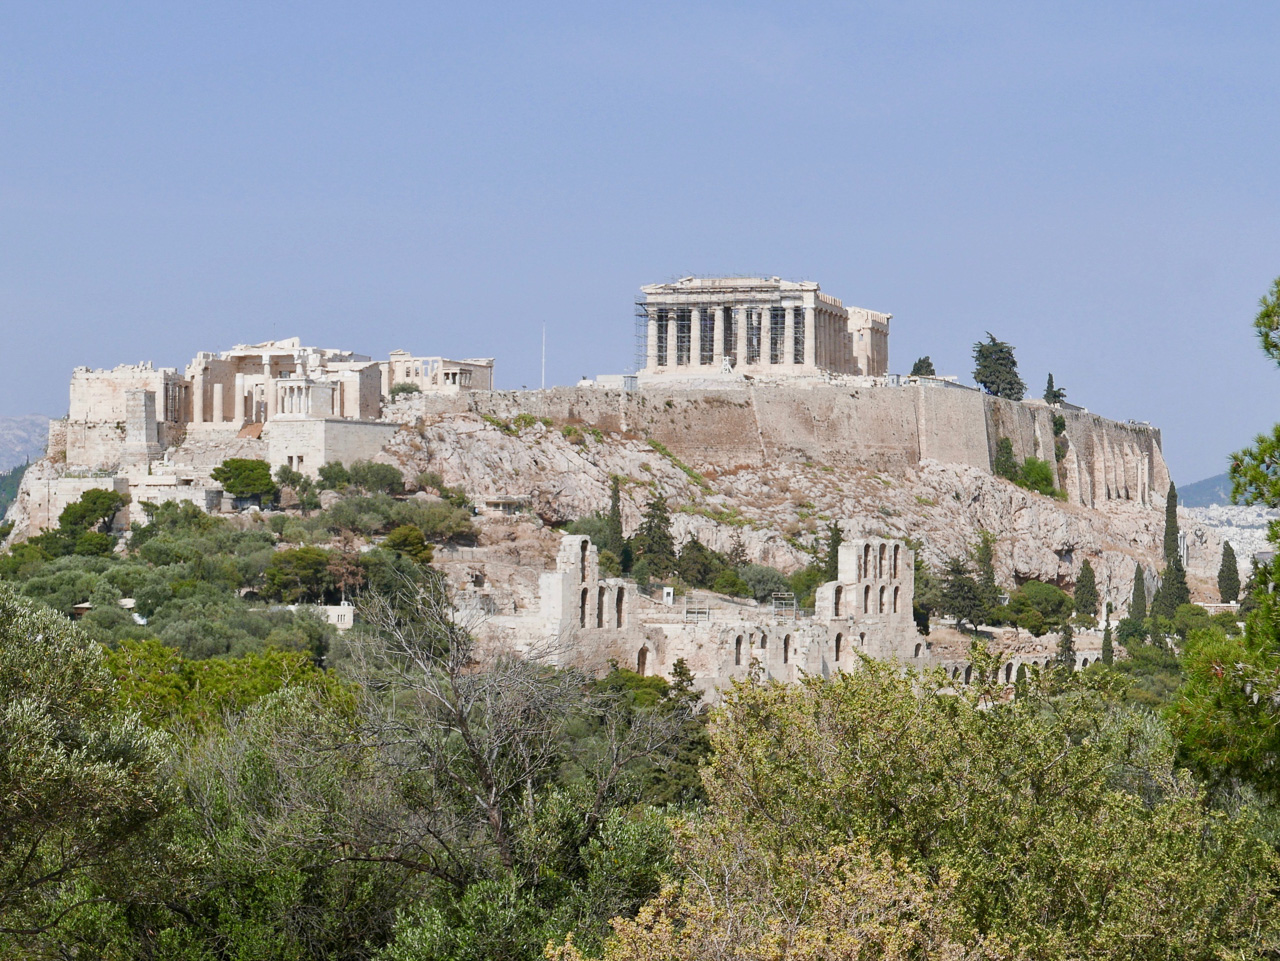 Cara Sharratt Travel - Athens, Greece - Acropolis